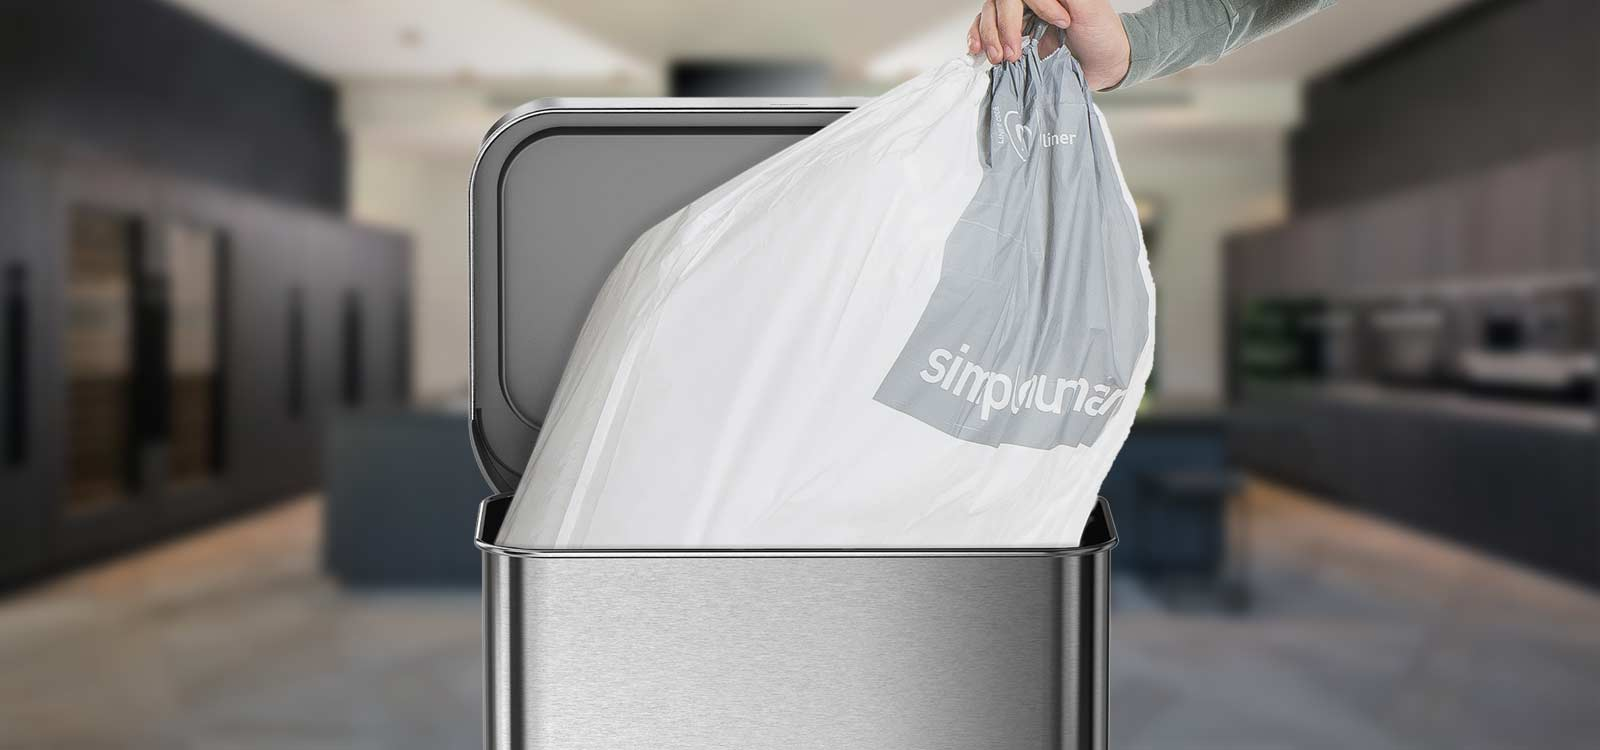 trash-bags-recycling-liners-header